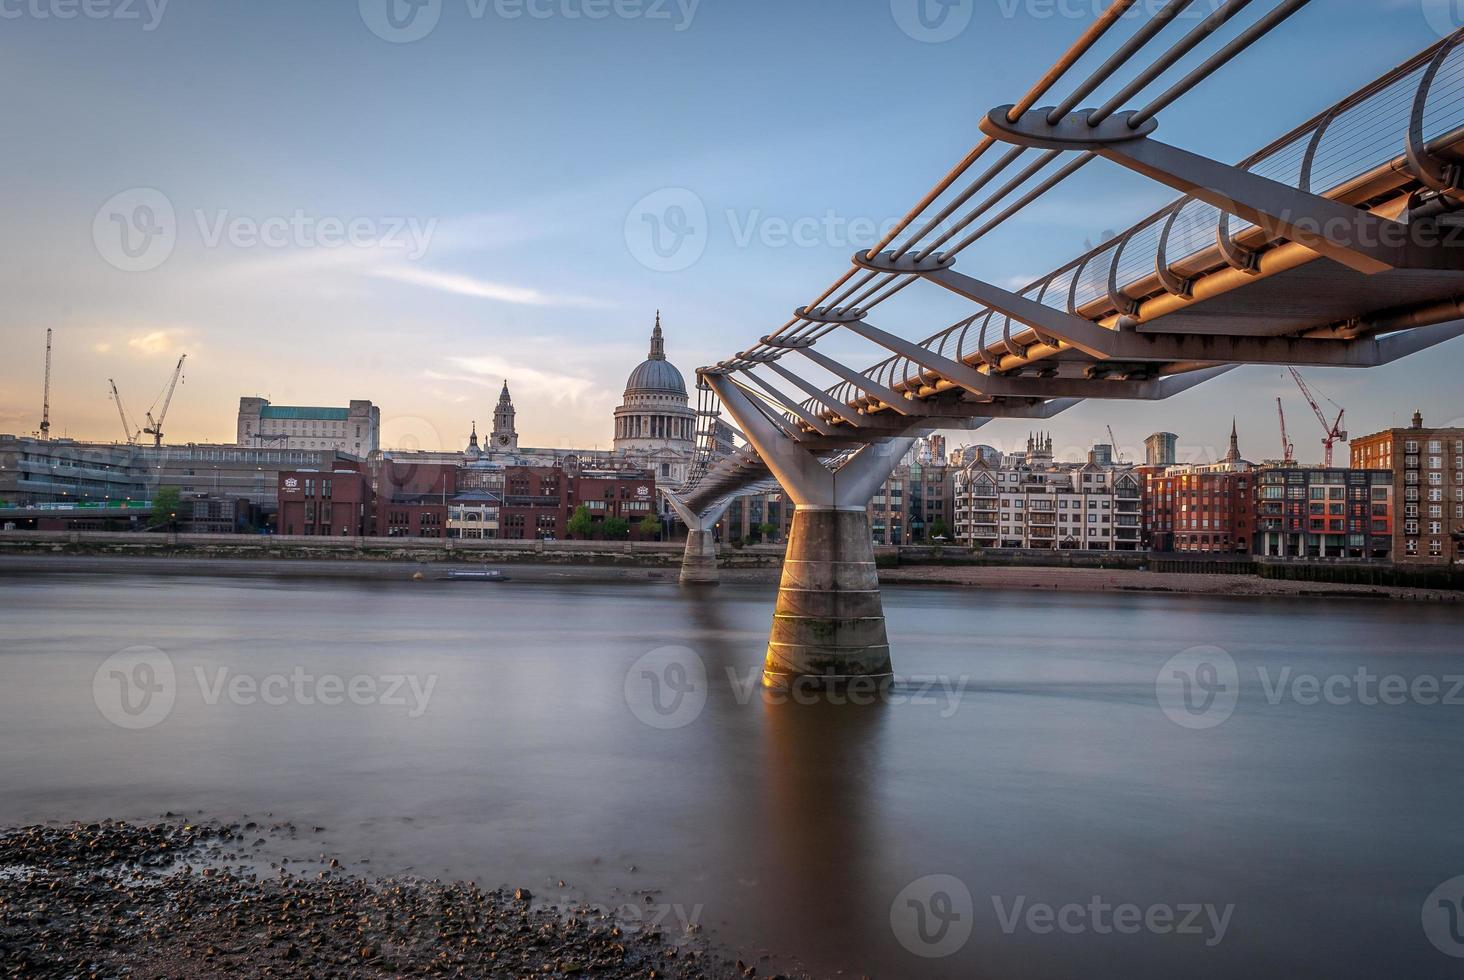 Millennium Bridge, London, UK photo